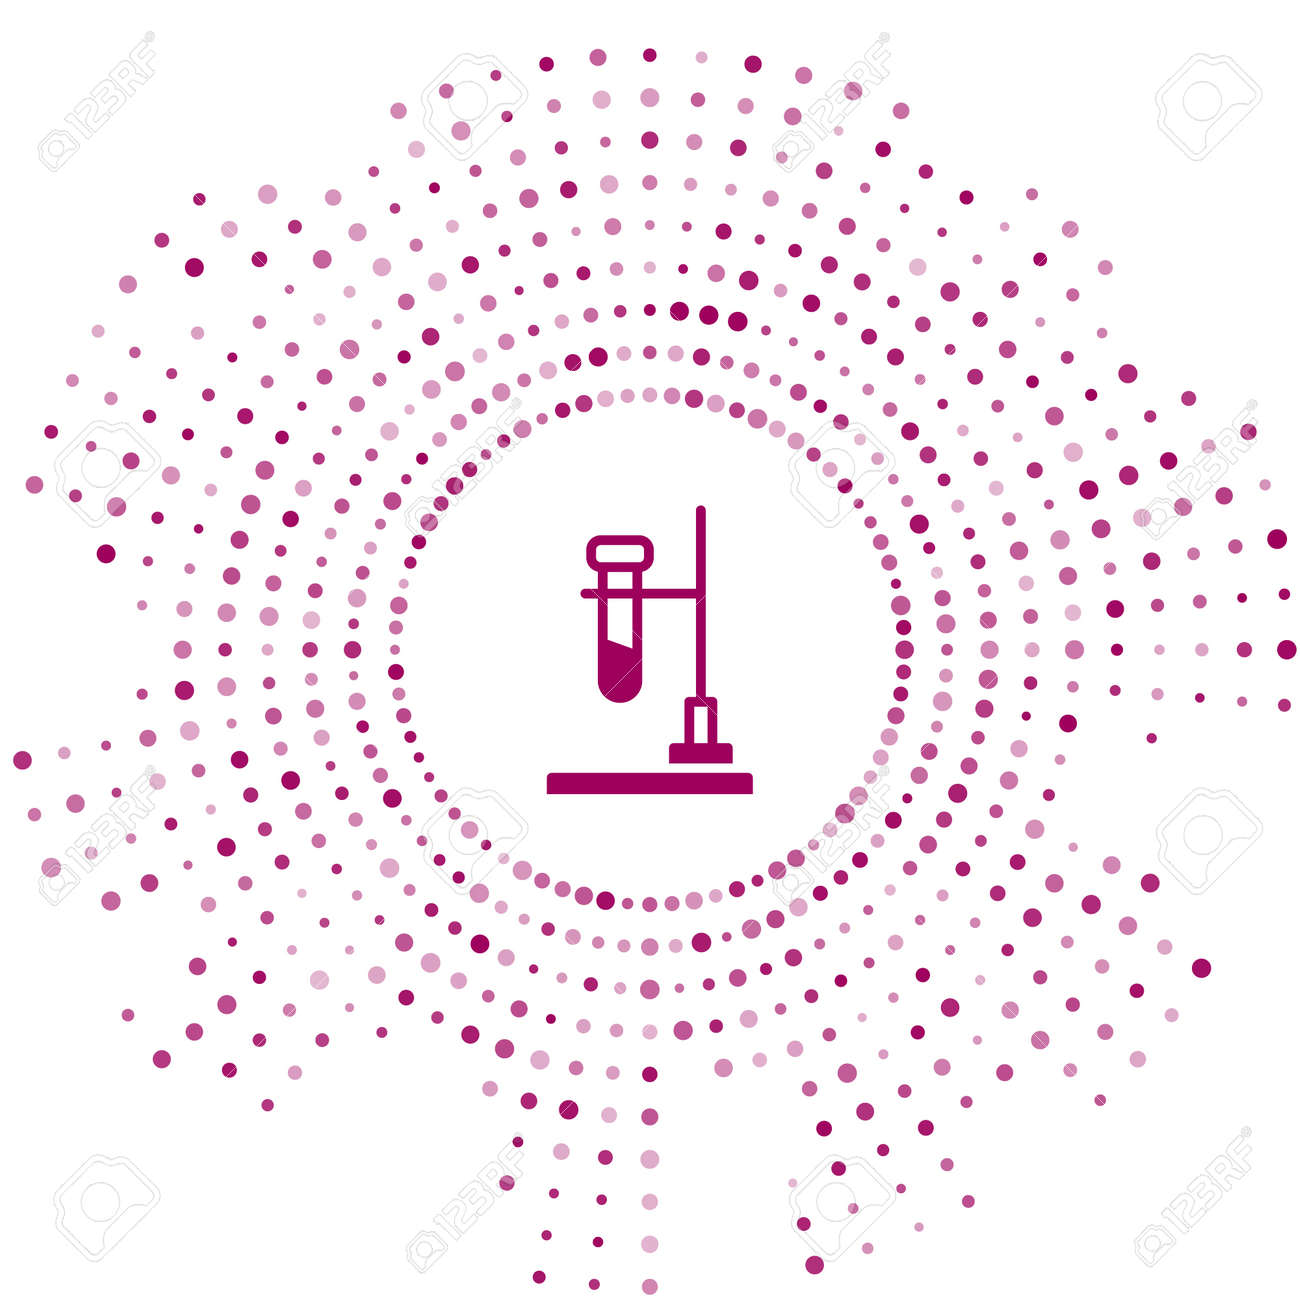 Purple Glass test tube flask on fire heater experiment icon isolated on white background. Laboratory equipment. Abstract circle random dots. Vector - 170180350